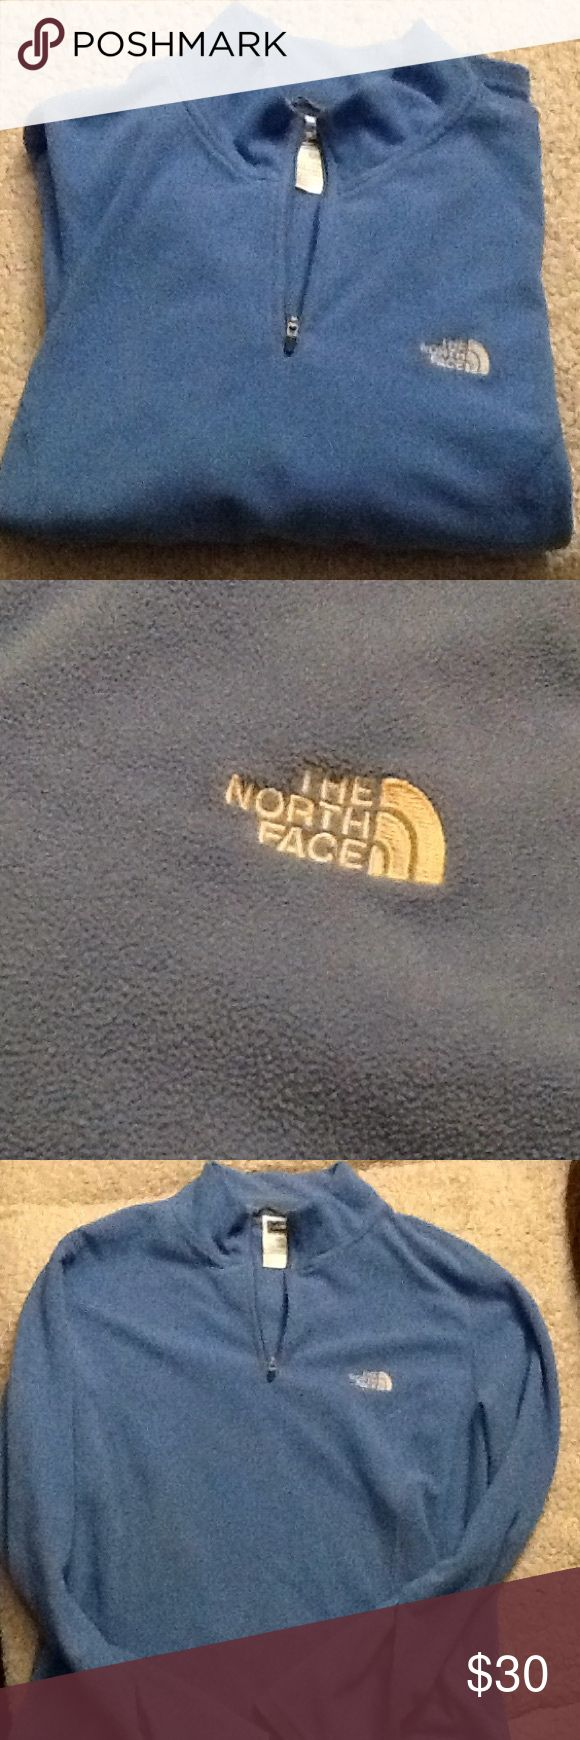 North face blue x-large half zip sweater Gently worn. Xlarge The North Face Sweaters